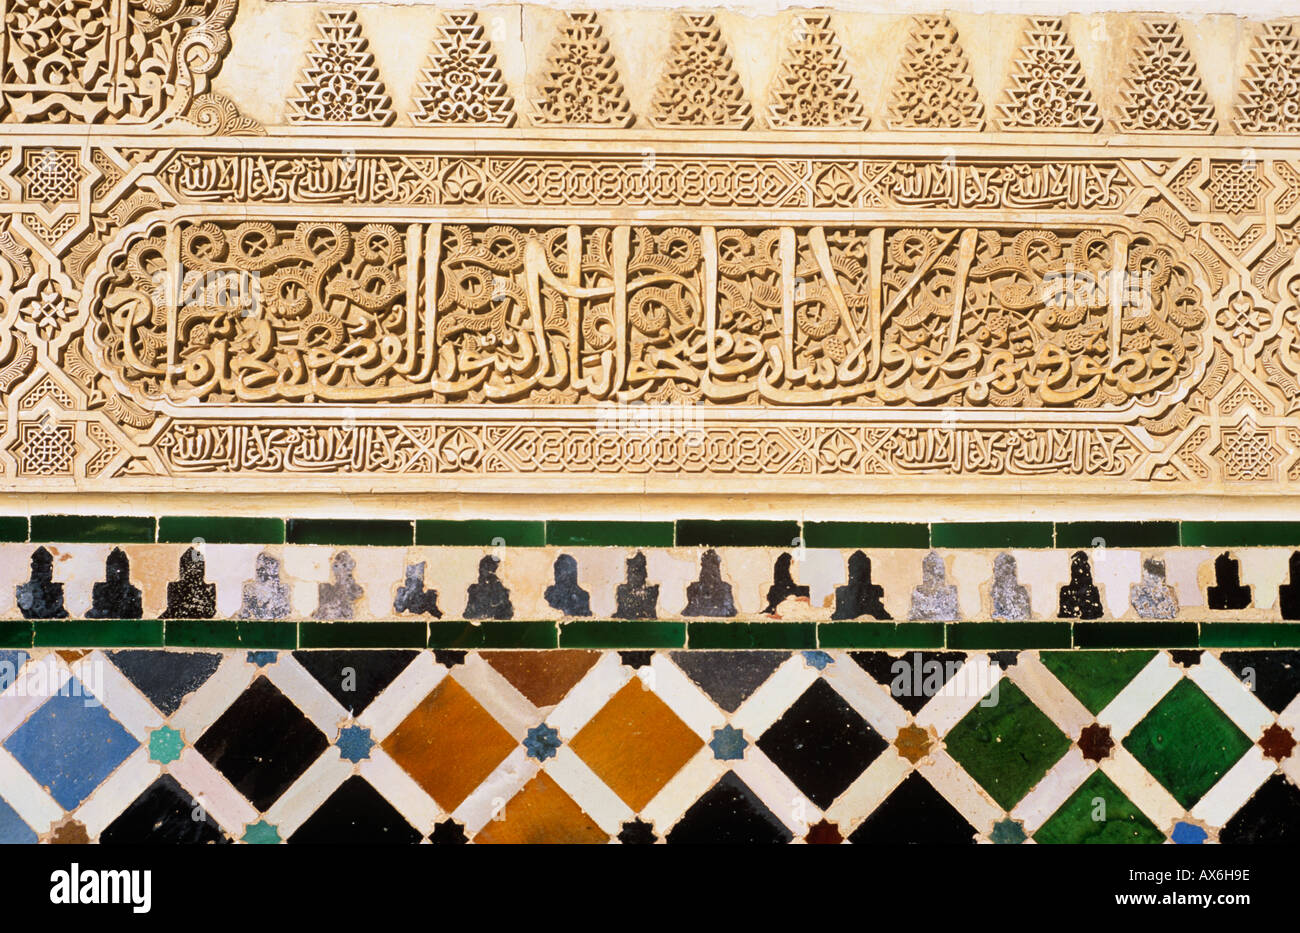 the alhambra palace essay When you visit granada, the alhambra is the must-see attraction there is a  reason why this place books out months in advance to thousands.